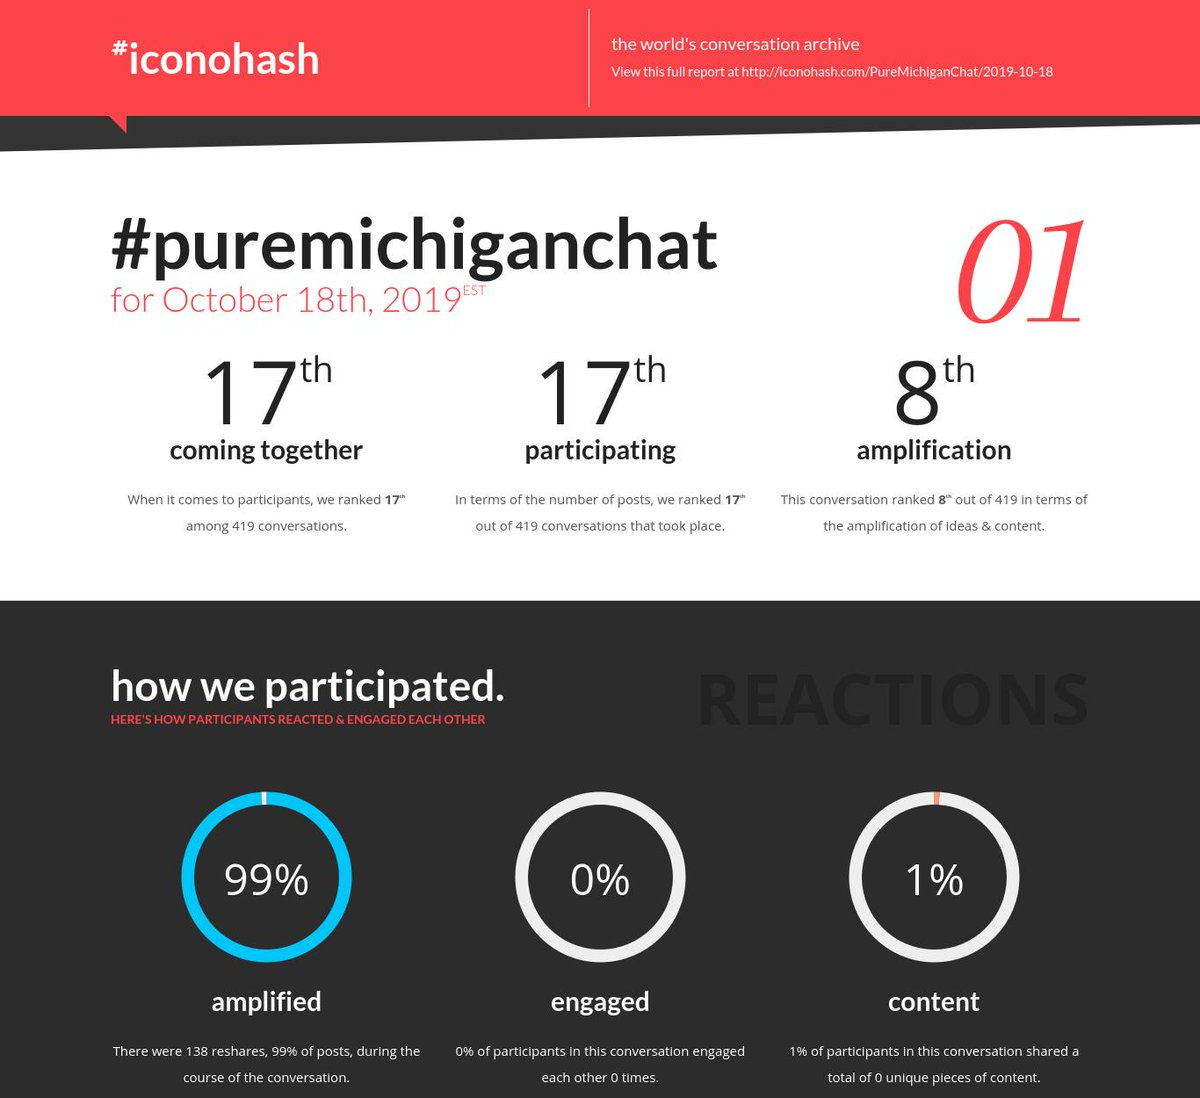 Your daily conversation report is ready for #PureMichiganChat for Oct 18th http://iconohash.com/PureMichiganChat/2019-10-18 …